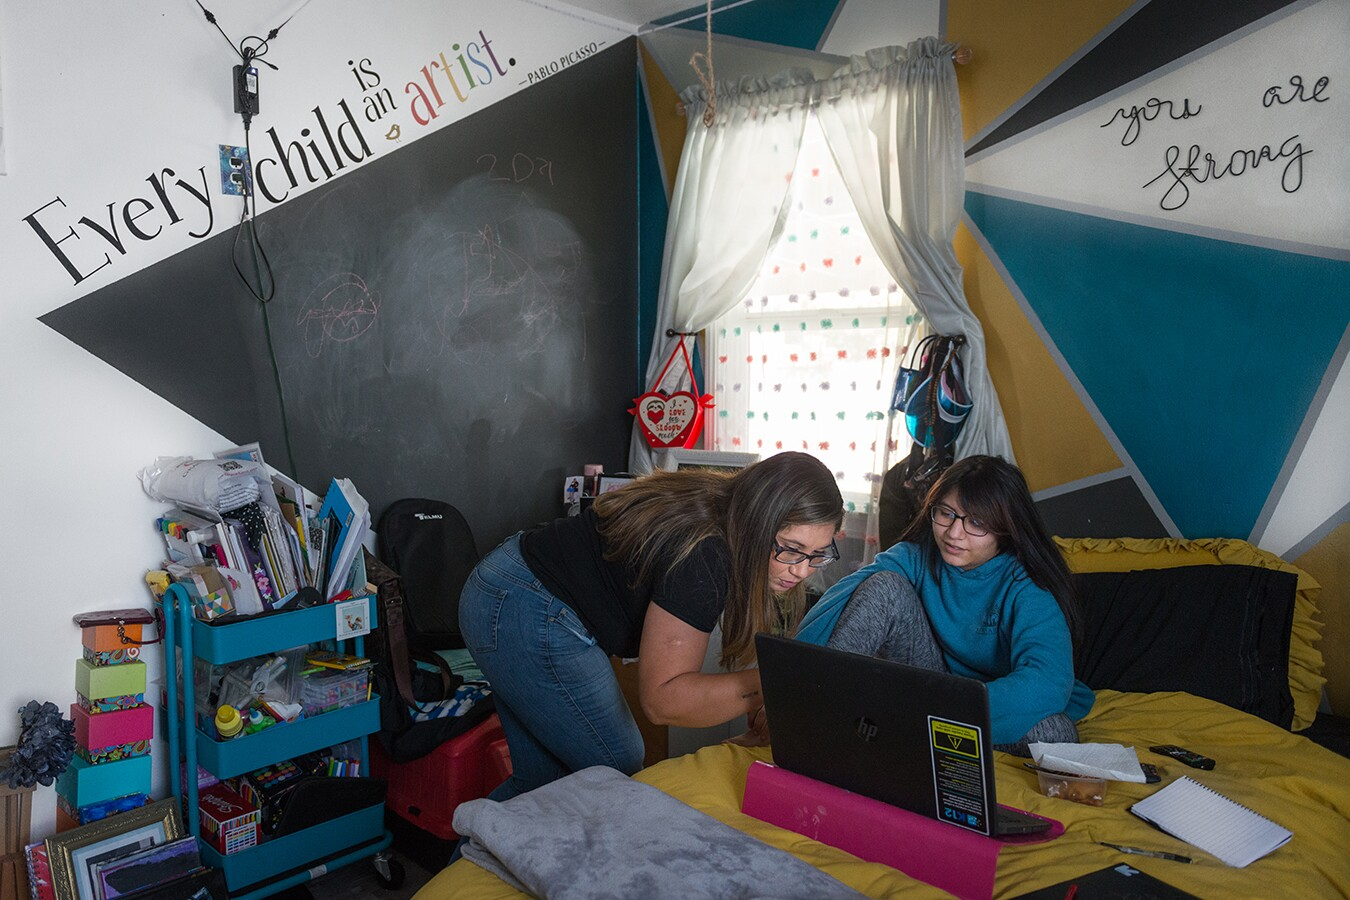 Rocio helps her daughter, Rhianna, with online classes. Rhianna sits on her bed, topped with a mustard yellow comforter and her laptop opened in front of her. The walls of her room are painted in a vibrant, geometric pattern. Along her wall are various school supplies, books and other miscellaneous items.